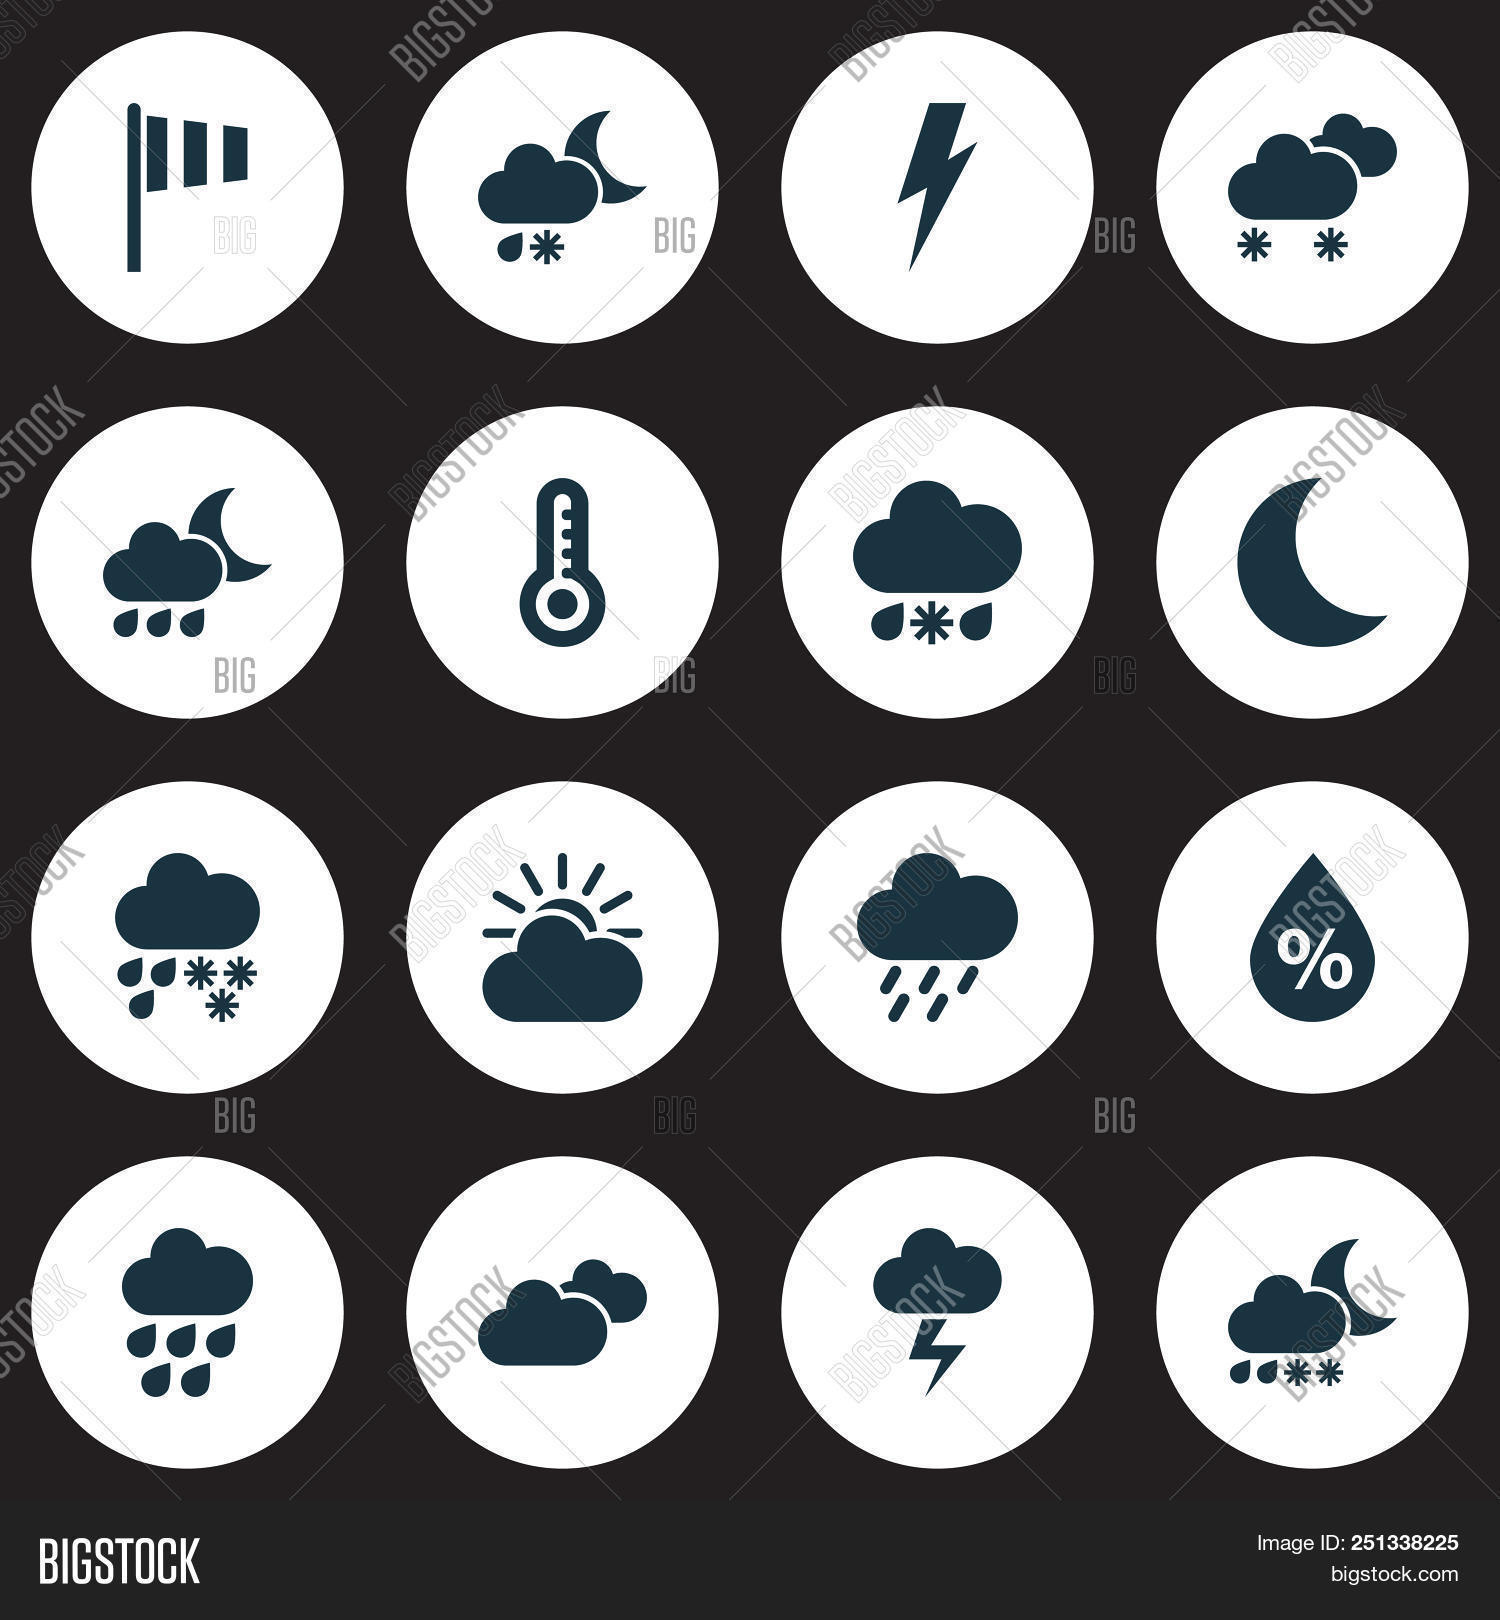 air,climate,cloud,clouded,cloudy,cold,collection,day,deluge,drizzle,drop,ecology,element,equipment,fall,fog,freeze,hail,hailstorm,heavy,humidity,icon,lightning,meteorology,moon,nature,night,overcast,rain,raindrop,rainfall,rainy,rate,season,set,sky,sleet,snow,storm,sunset,sunshine,symbol,temperature,travel,water,weather,web,windmill